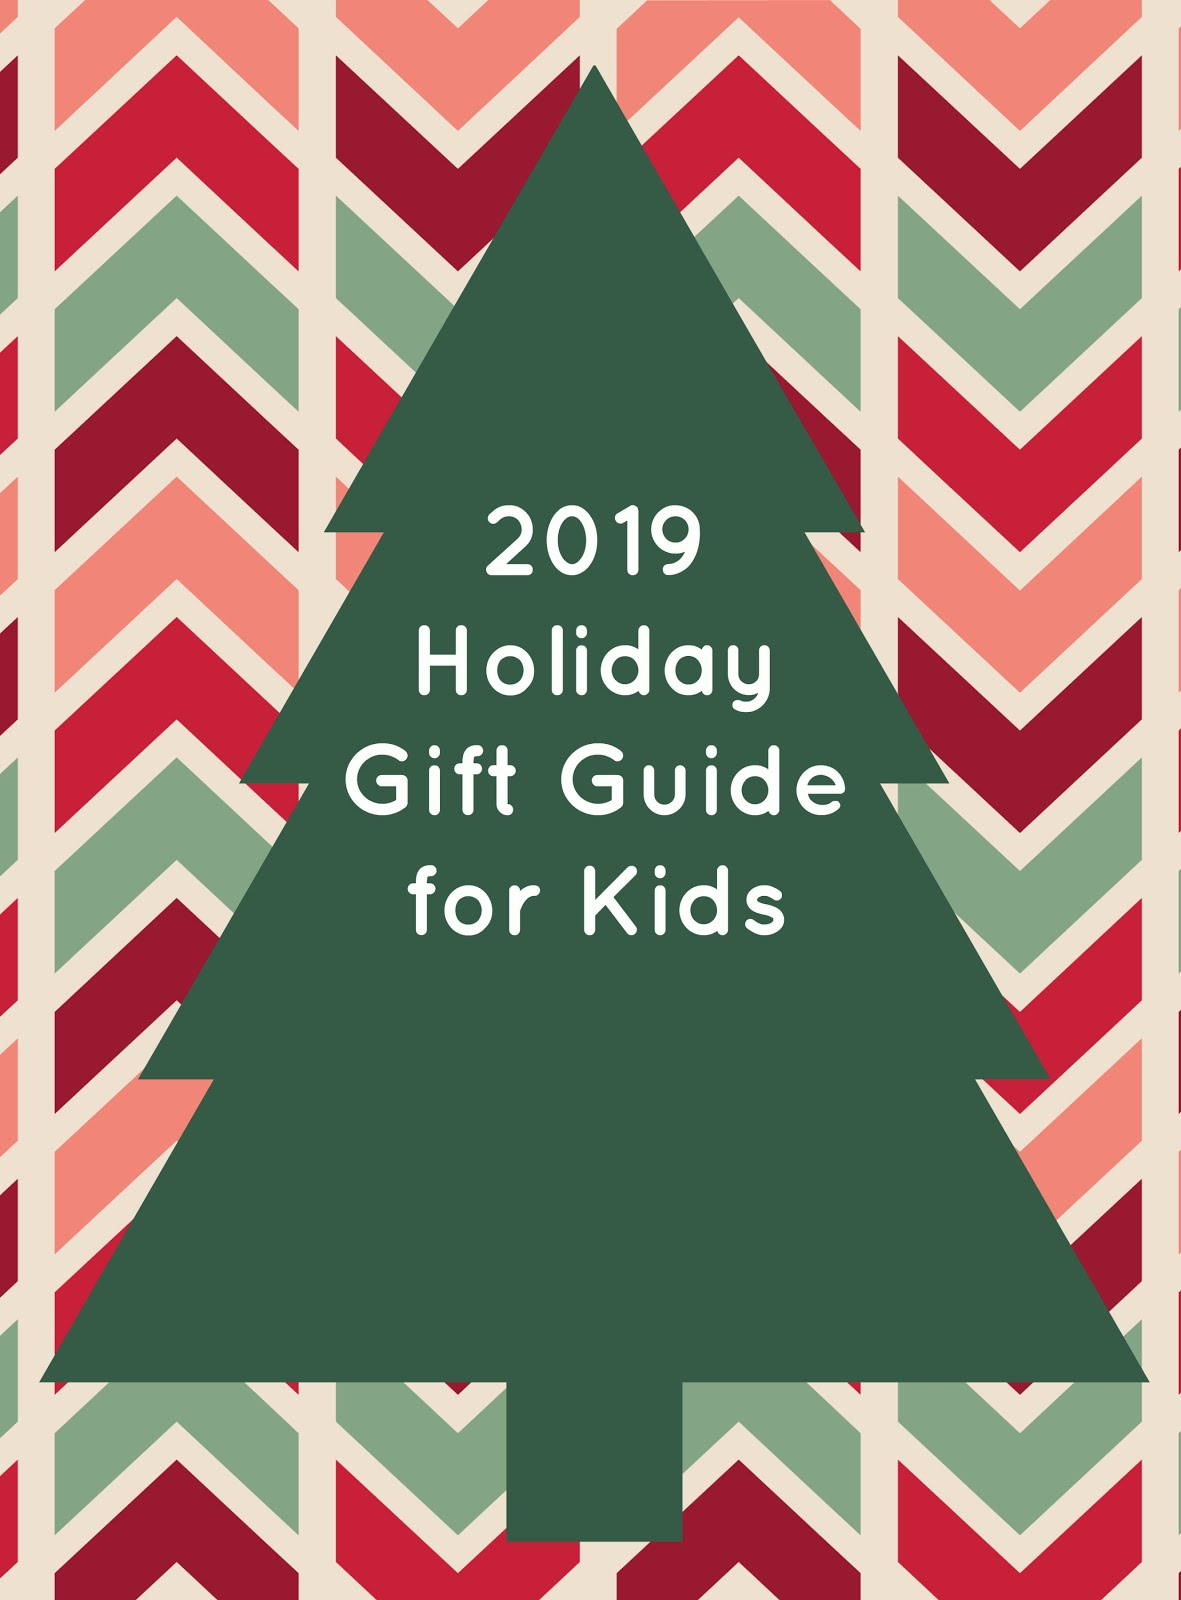 2019 Holiday Gift Guide for Kids!